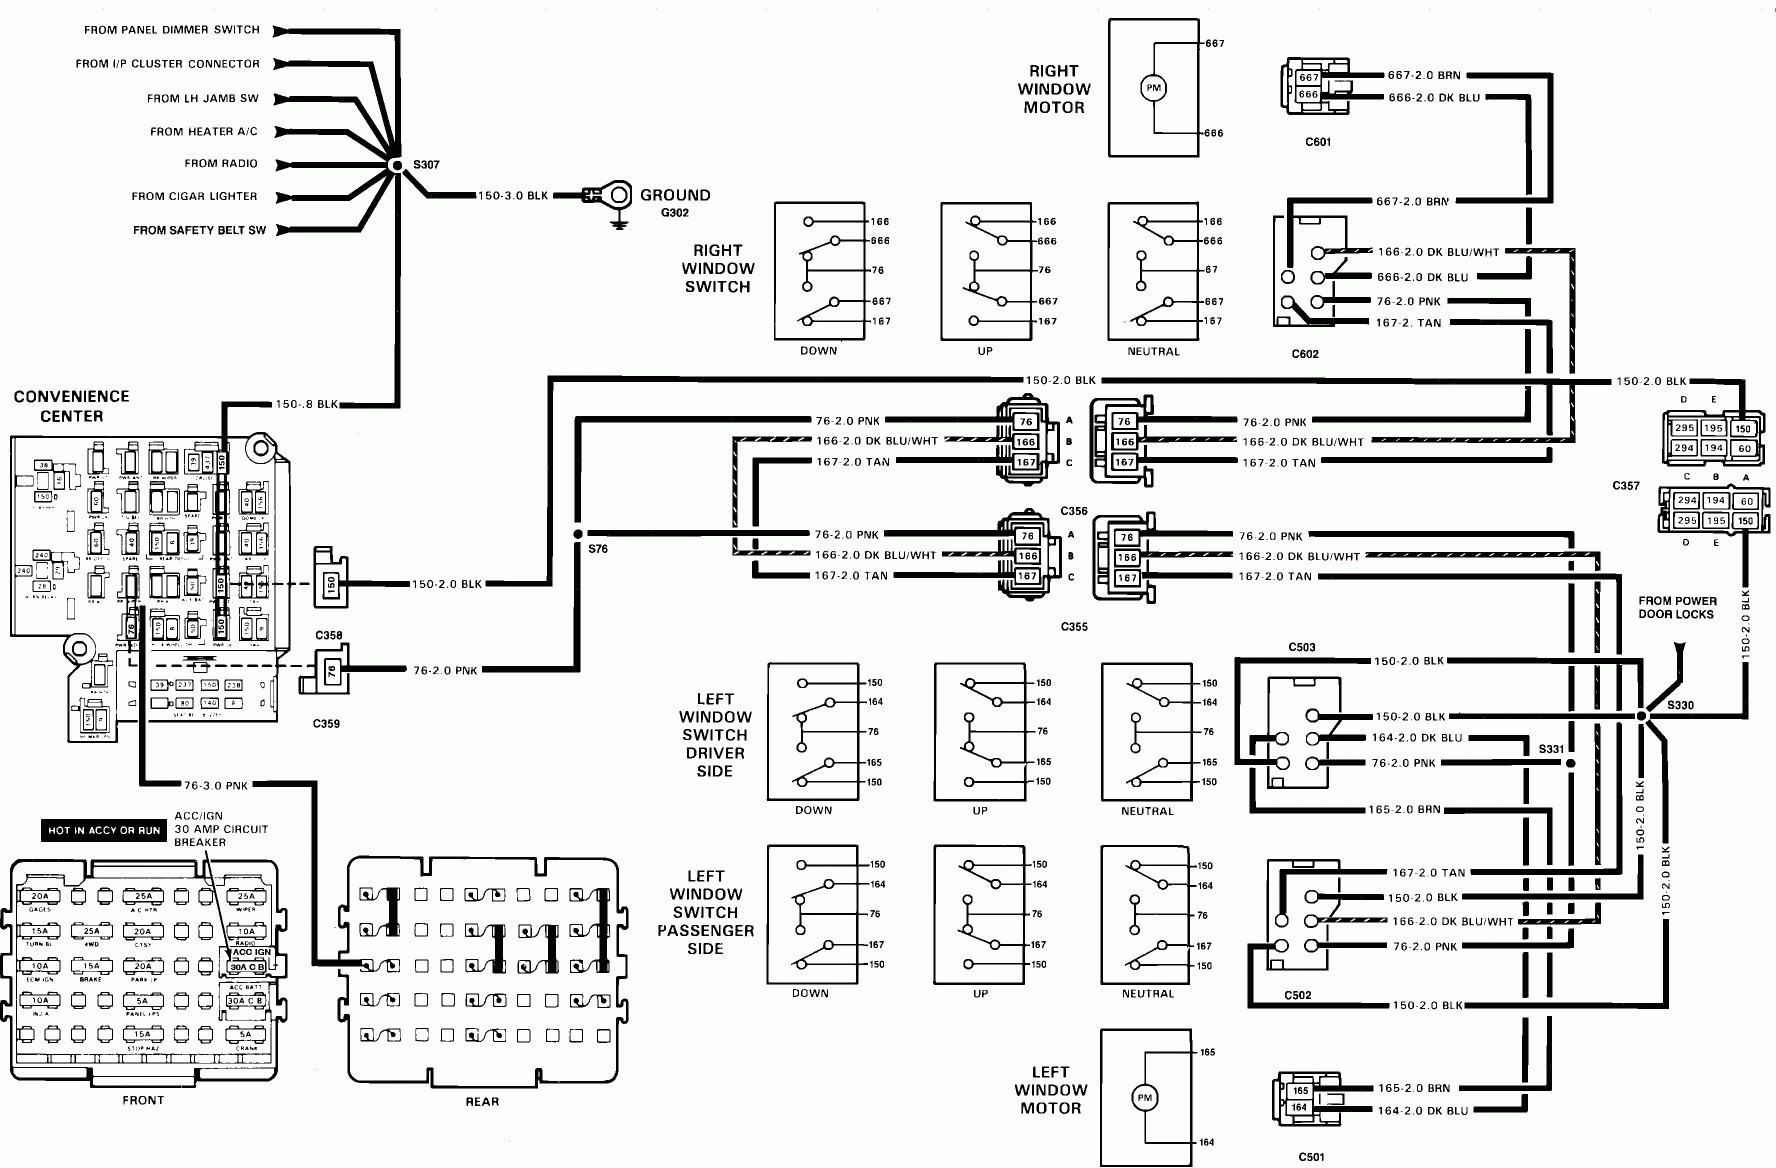 1985 Chevy Truck Power Window Wiring Diagram from static-cdn.imageservice.cloud